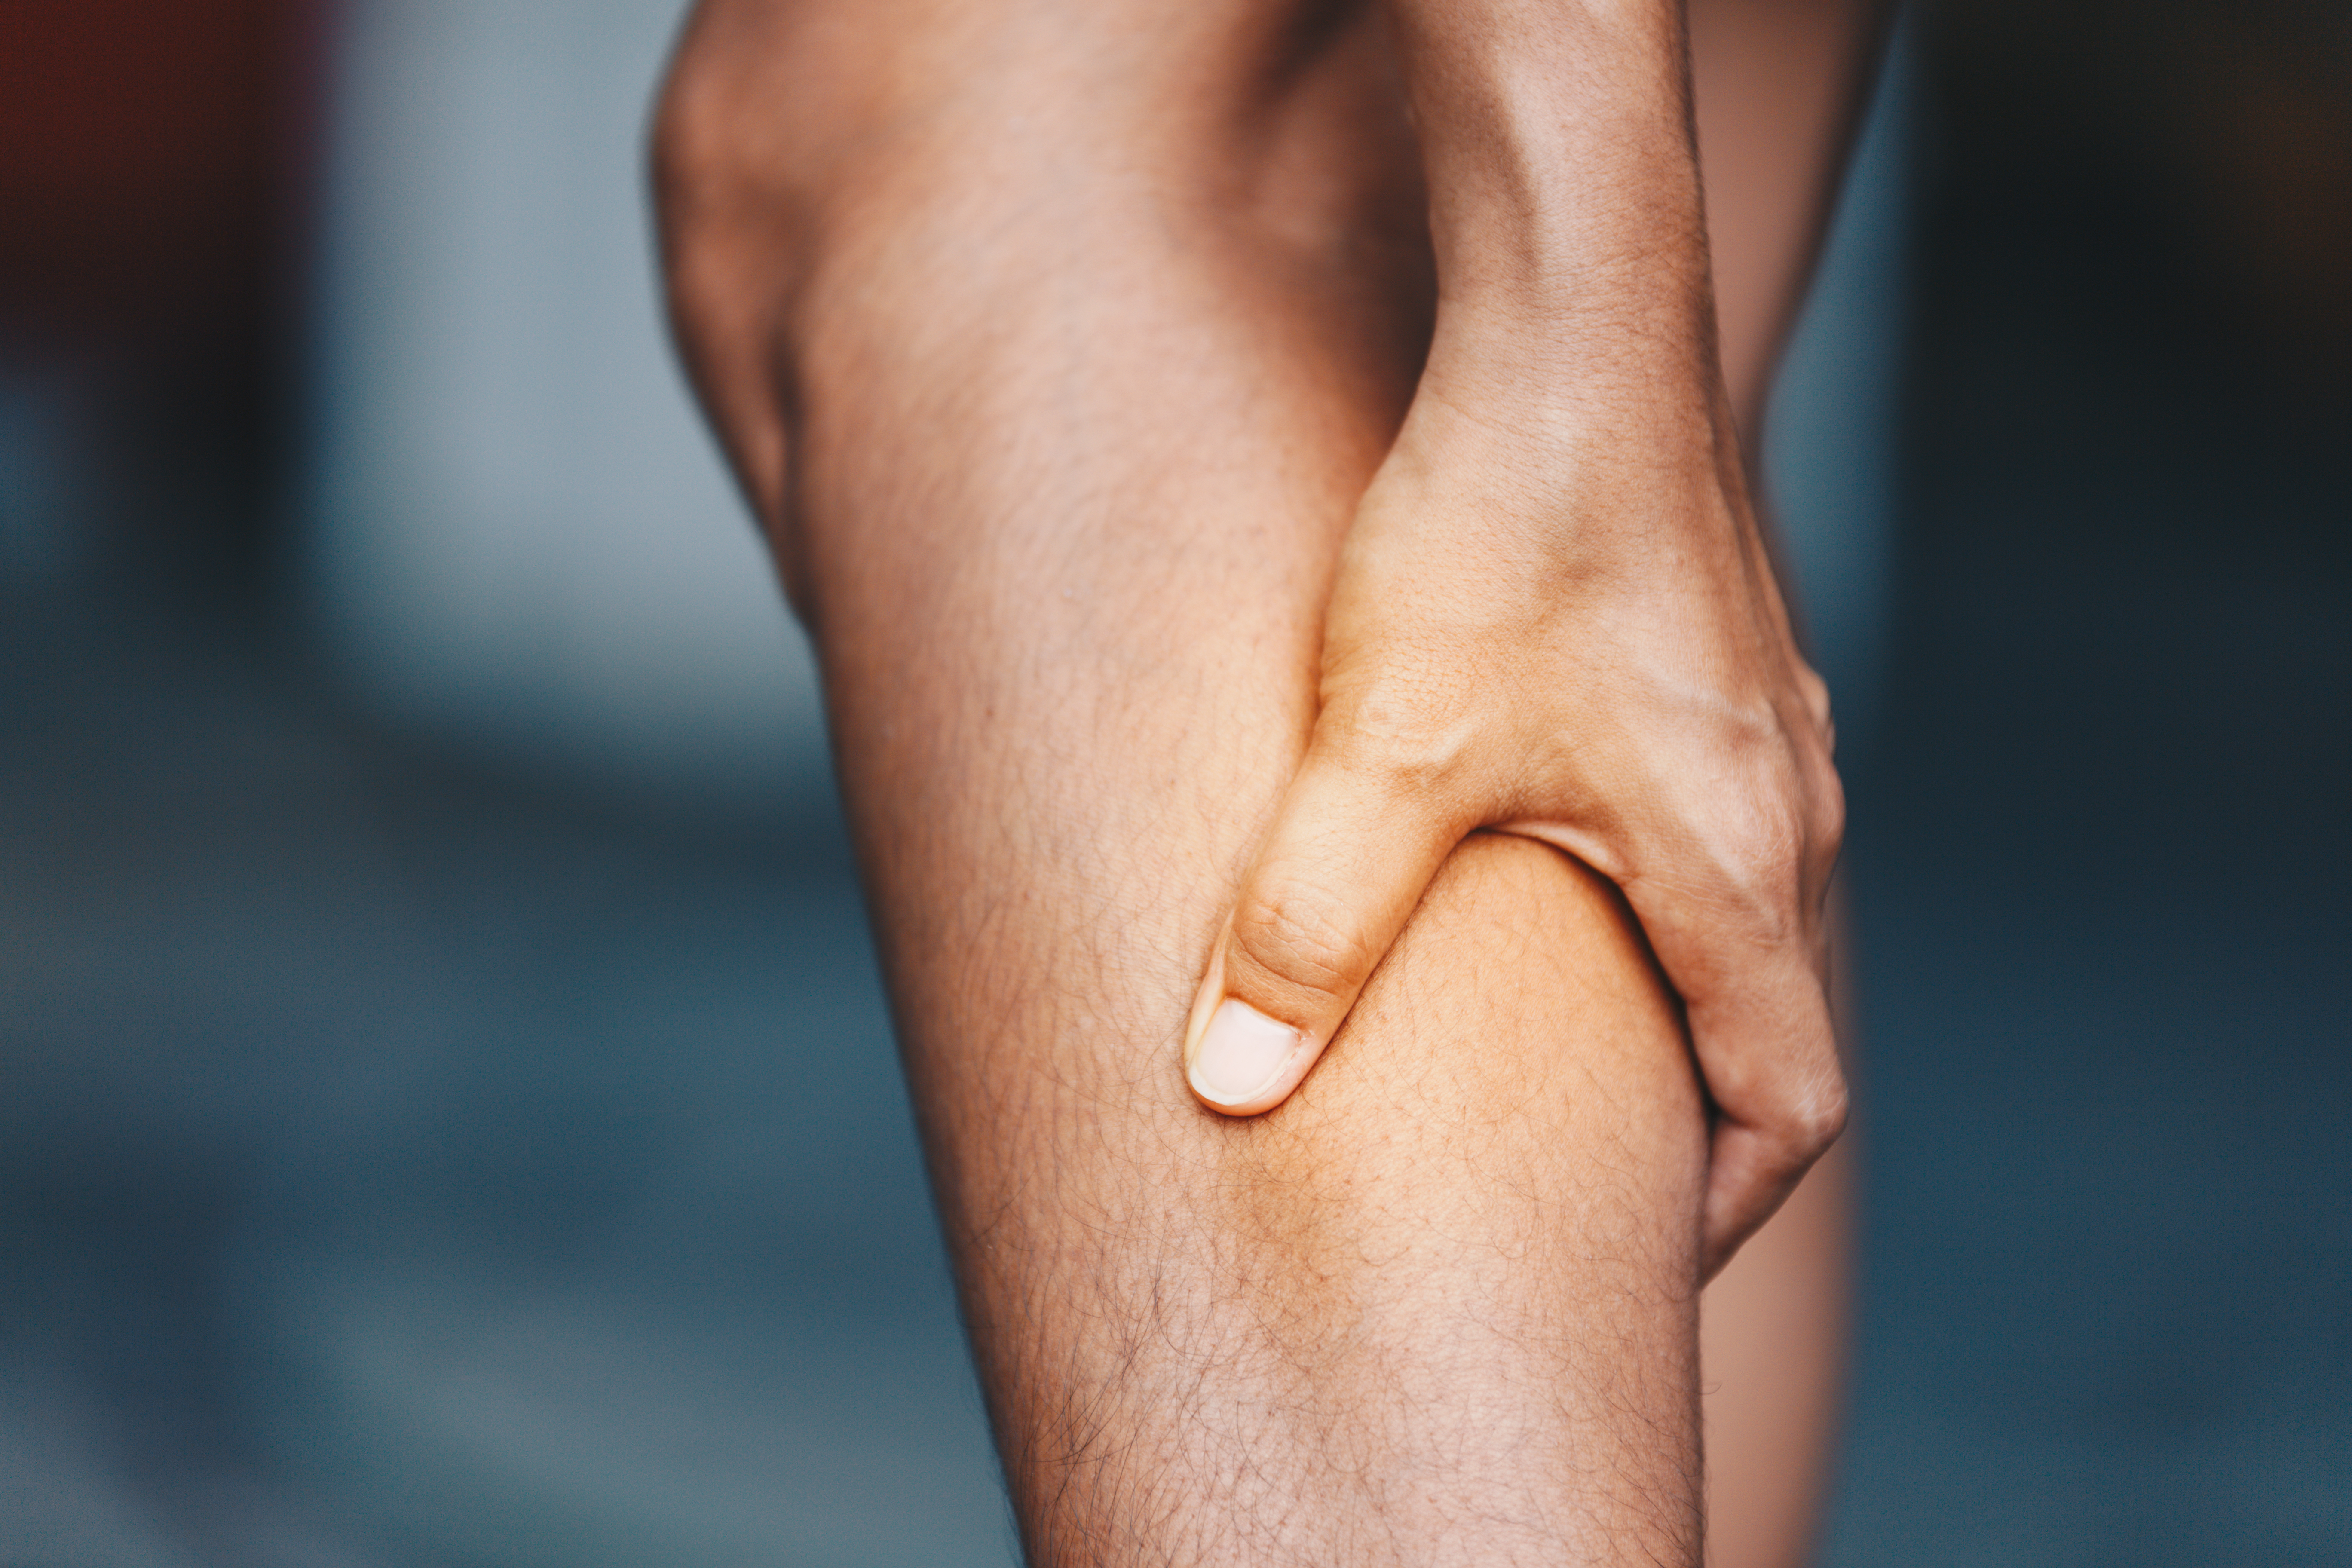 Twitching Calf Muscle Strength Tests and ALS Obsession